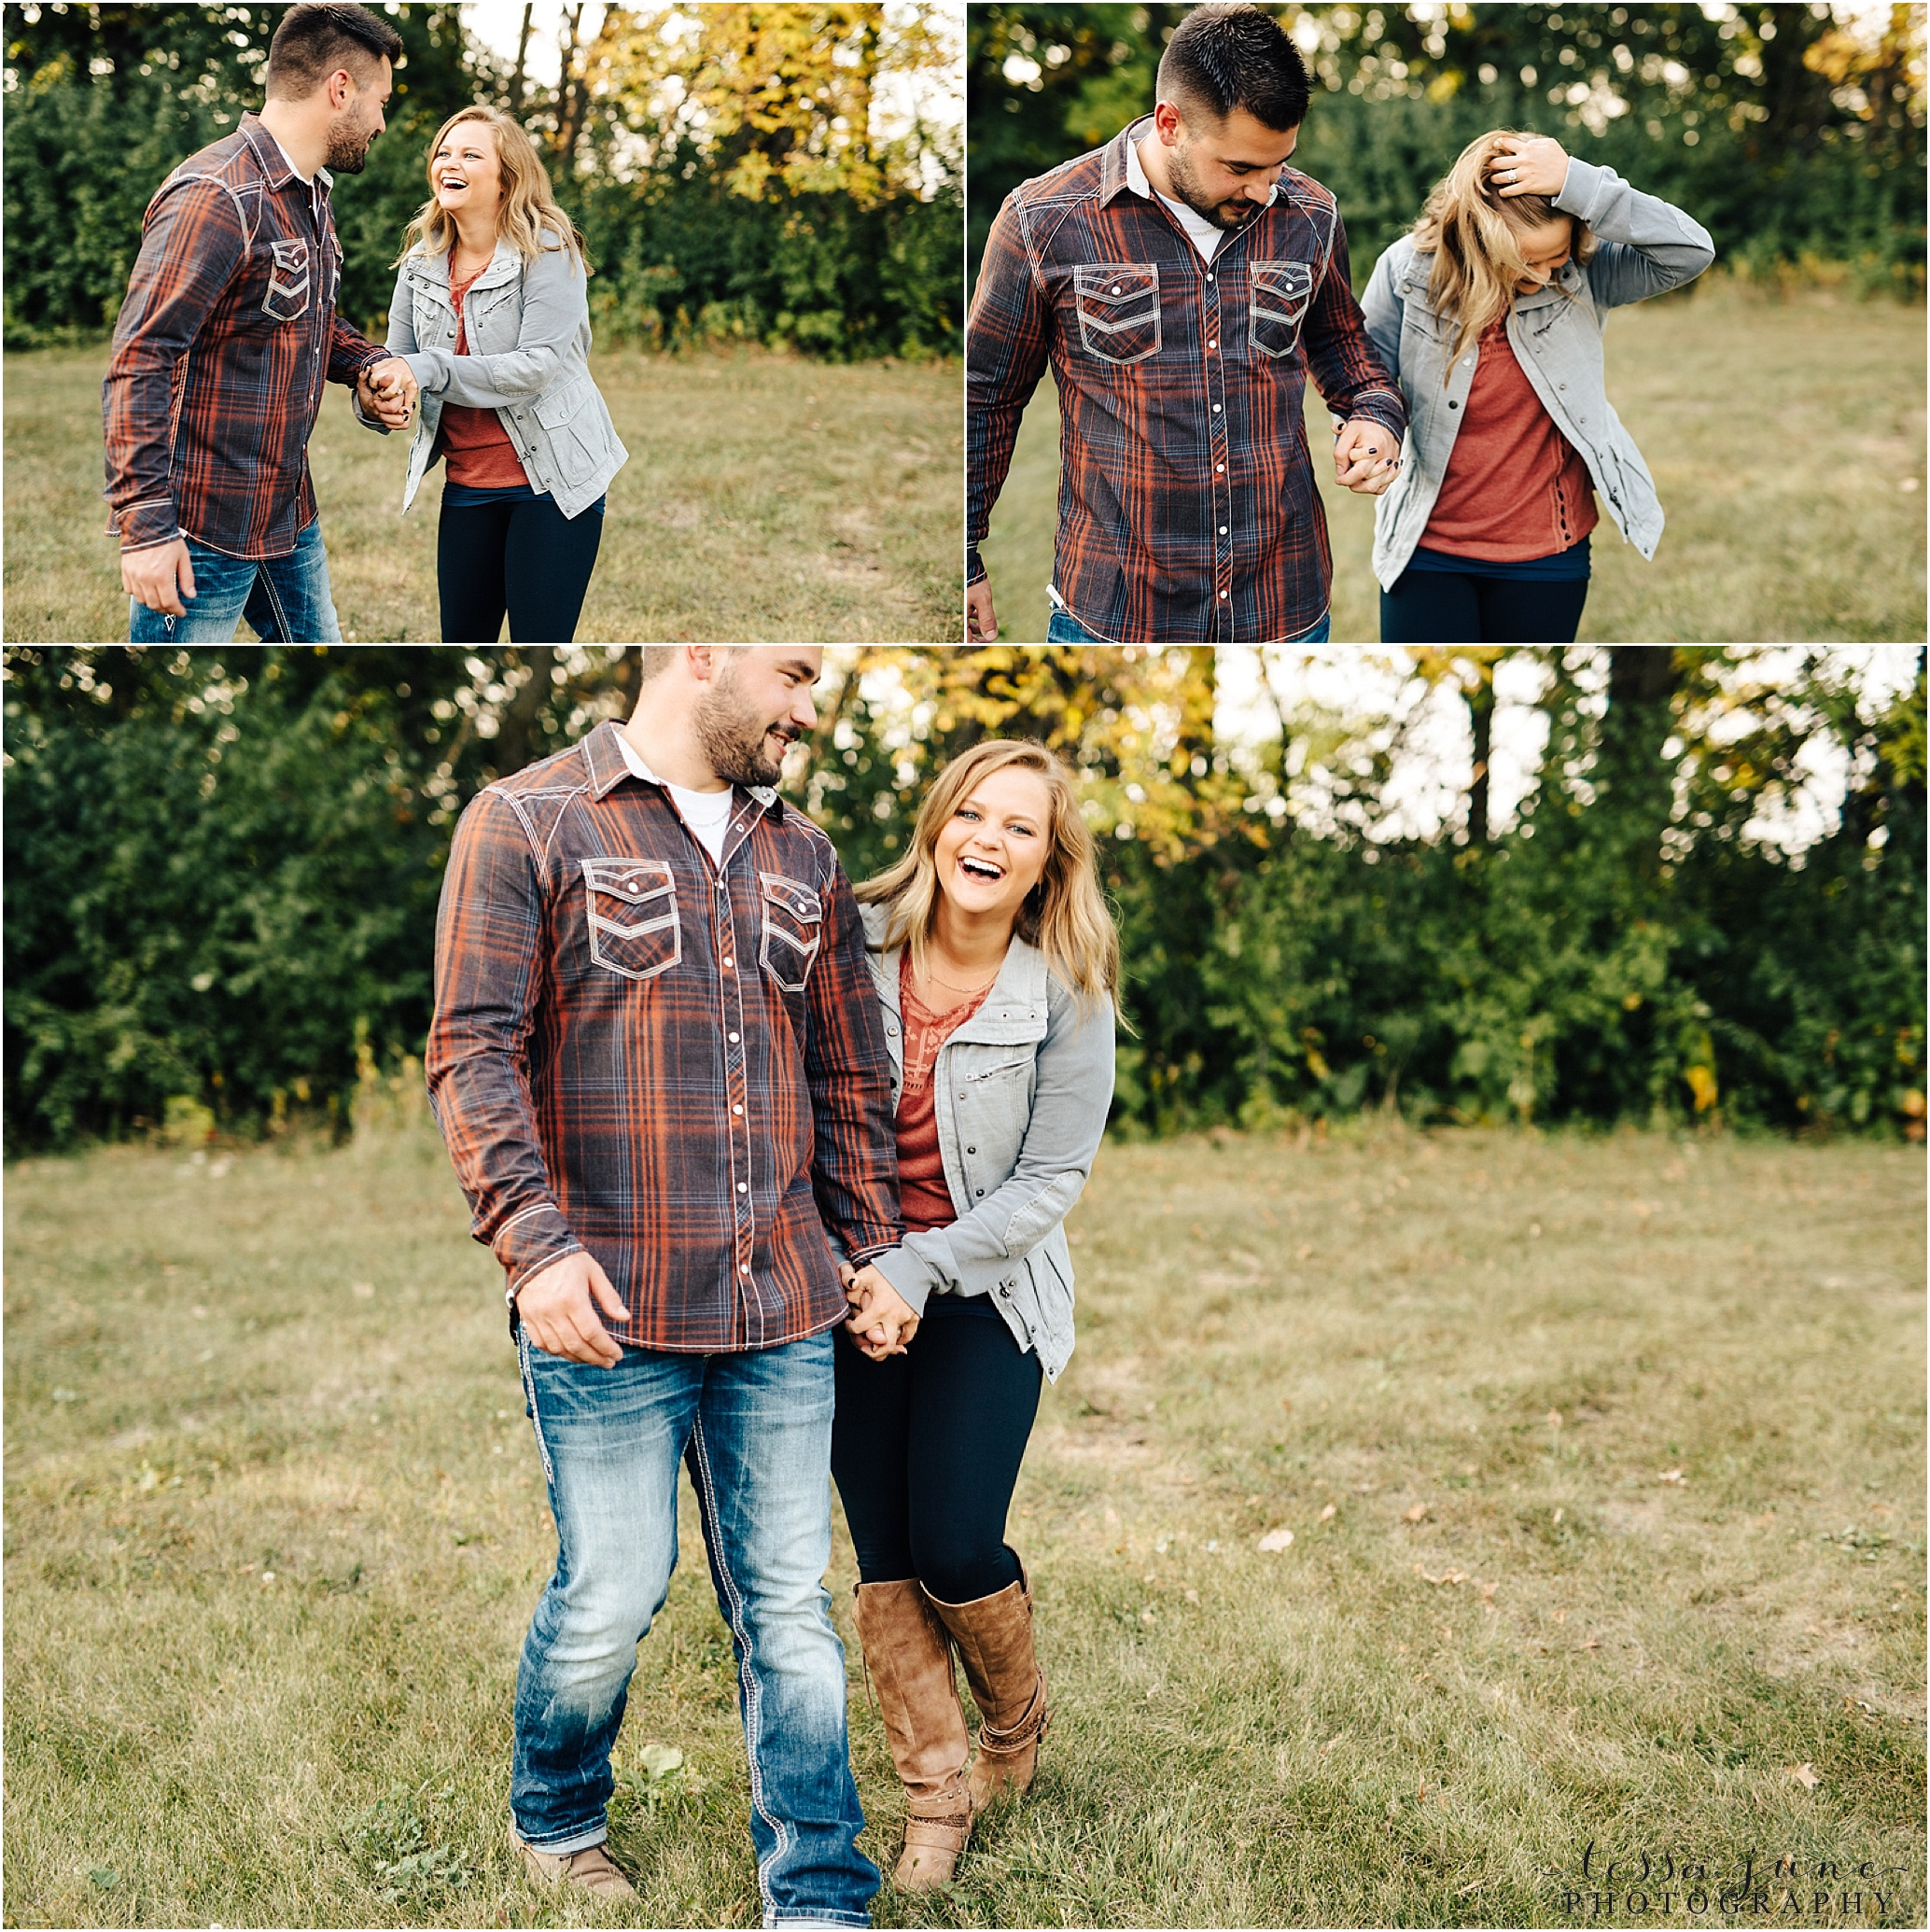 st-cloud-wedding-photographer-engagement-session-with-old-truck-9.jpg